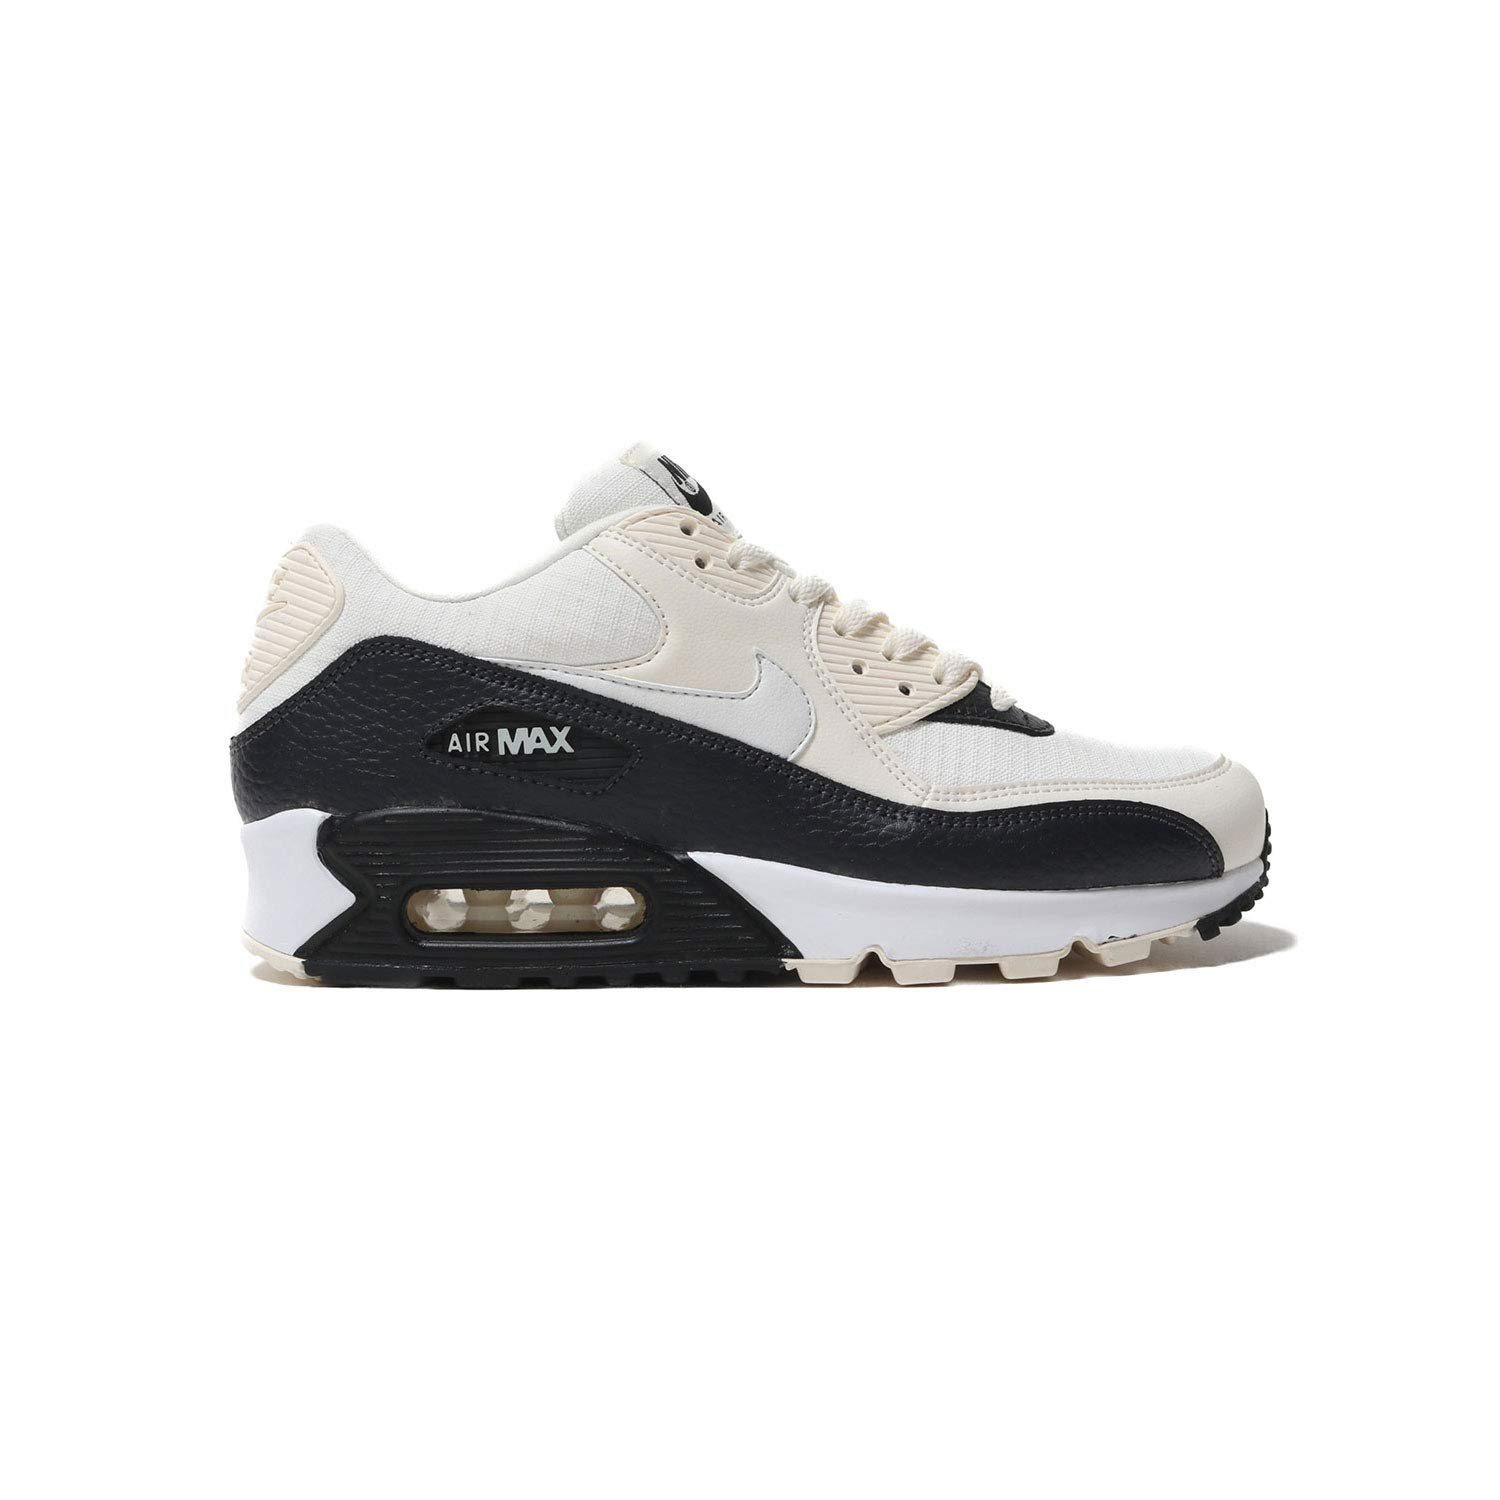 super popular ece16 d3e1d Nike Women's Air Max 90 Pale Ivory/White/Black 325213-138 (Size: 7)